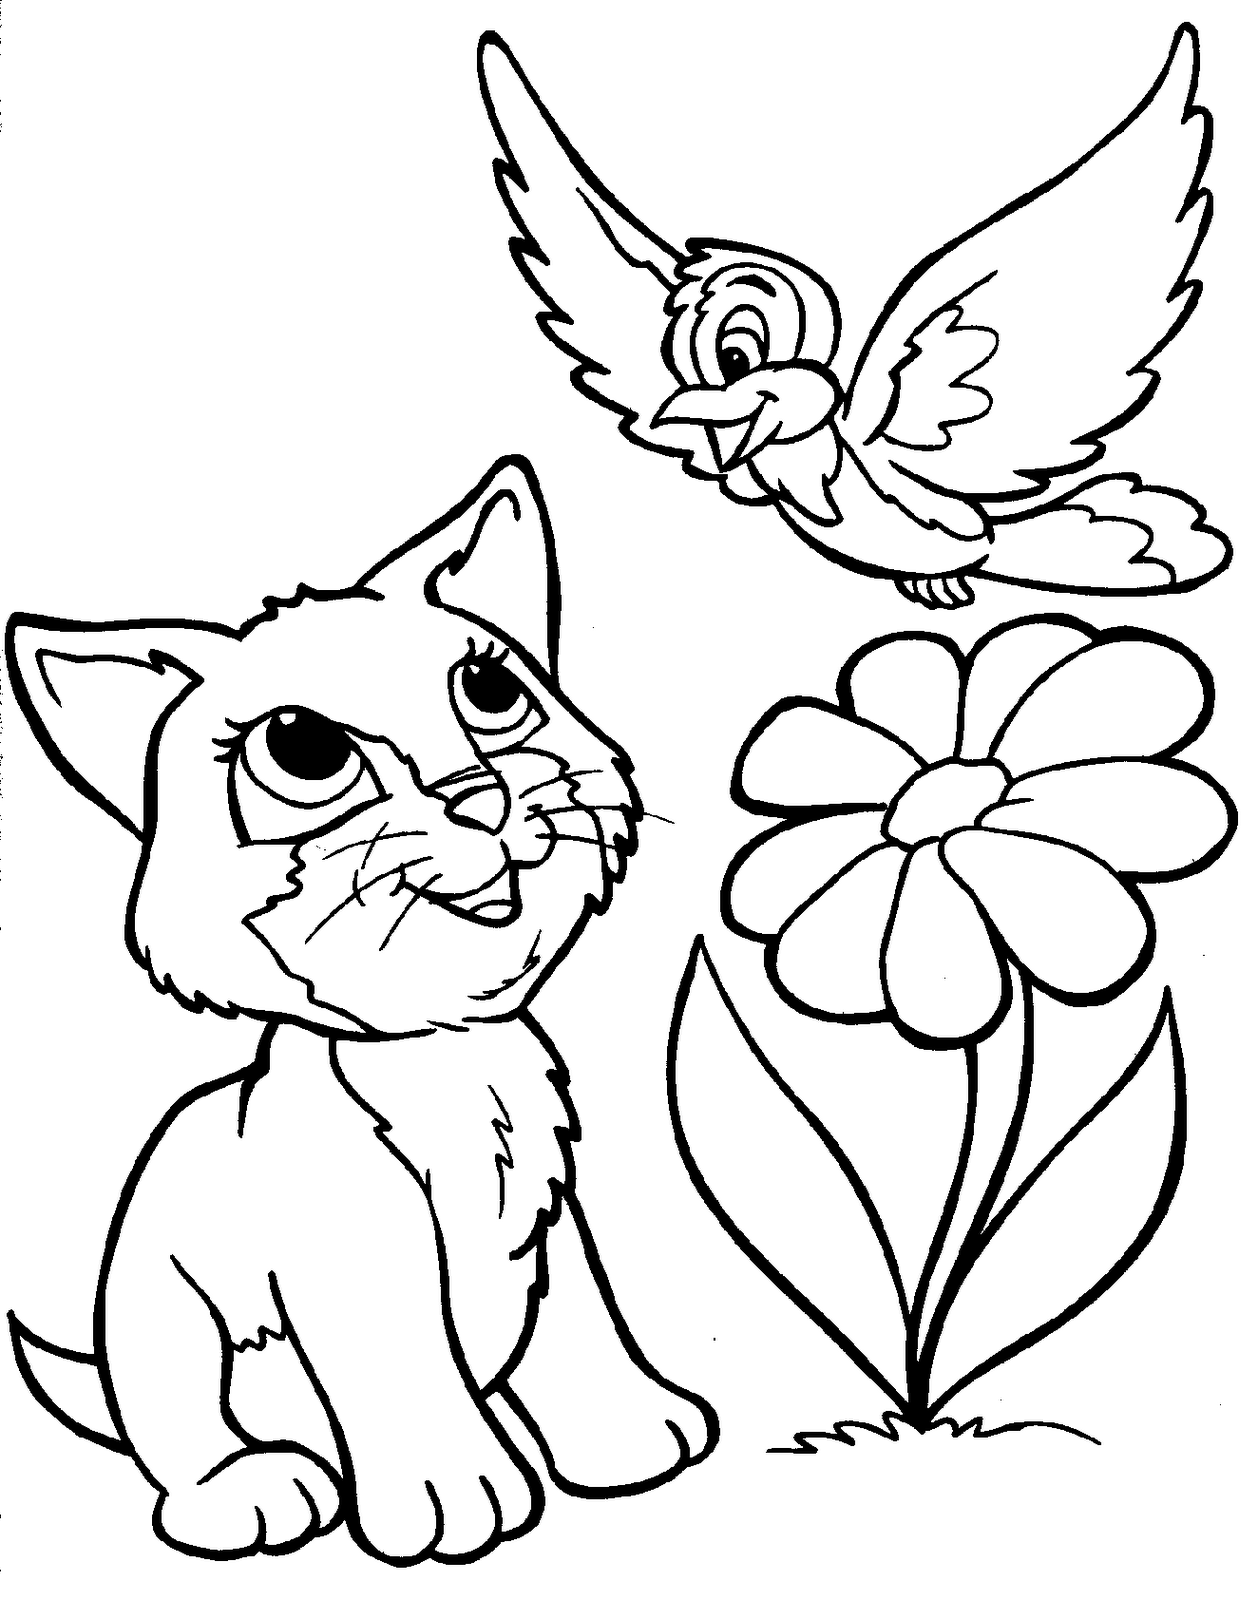 www coloring pages of animals coloring ville pages coloring of www animals